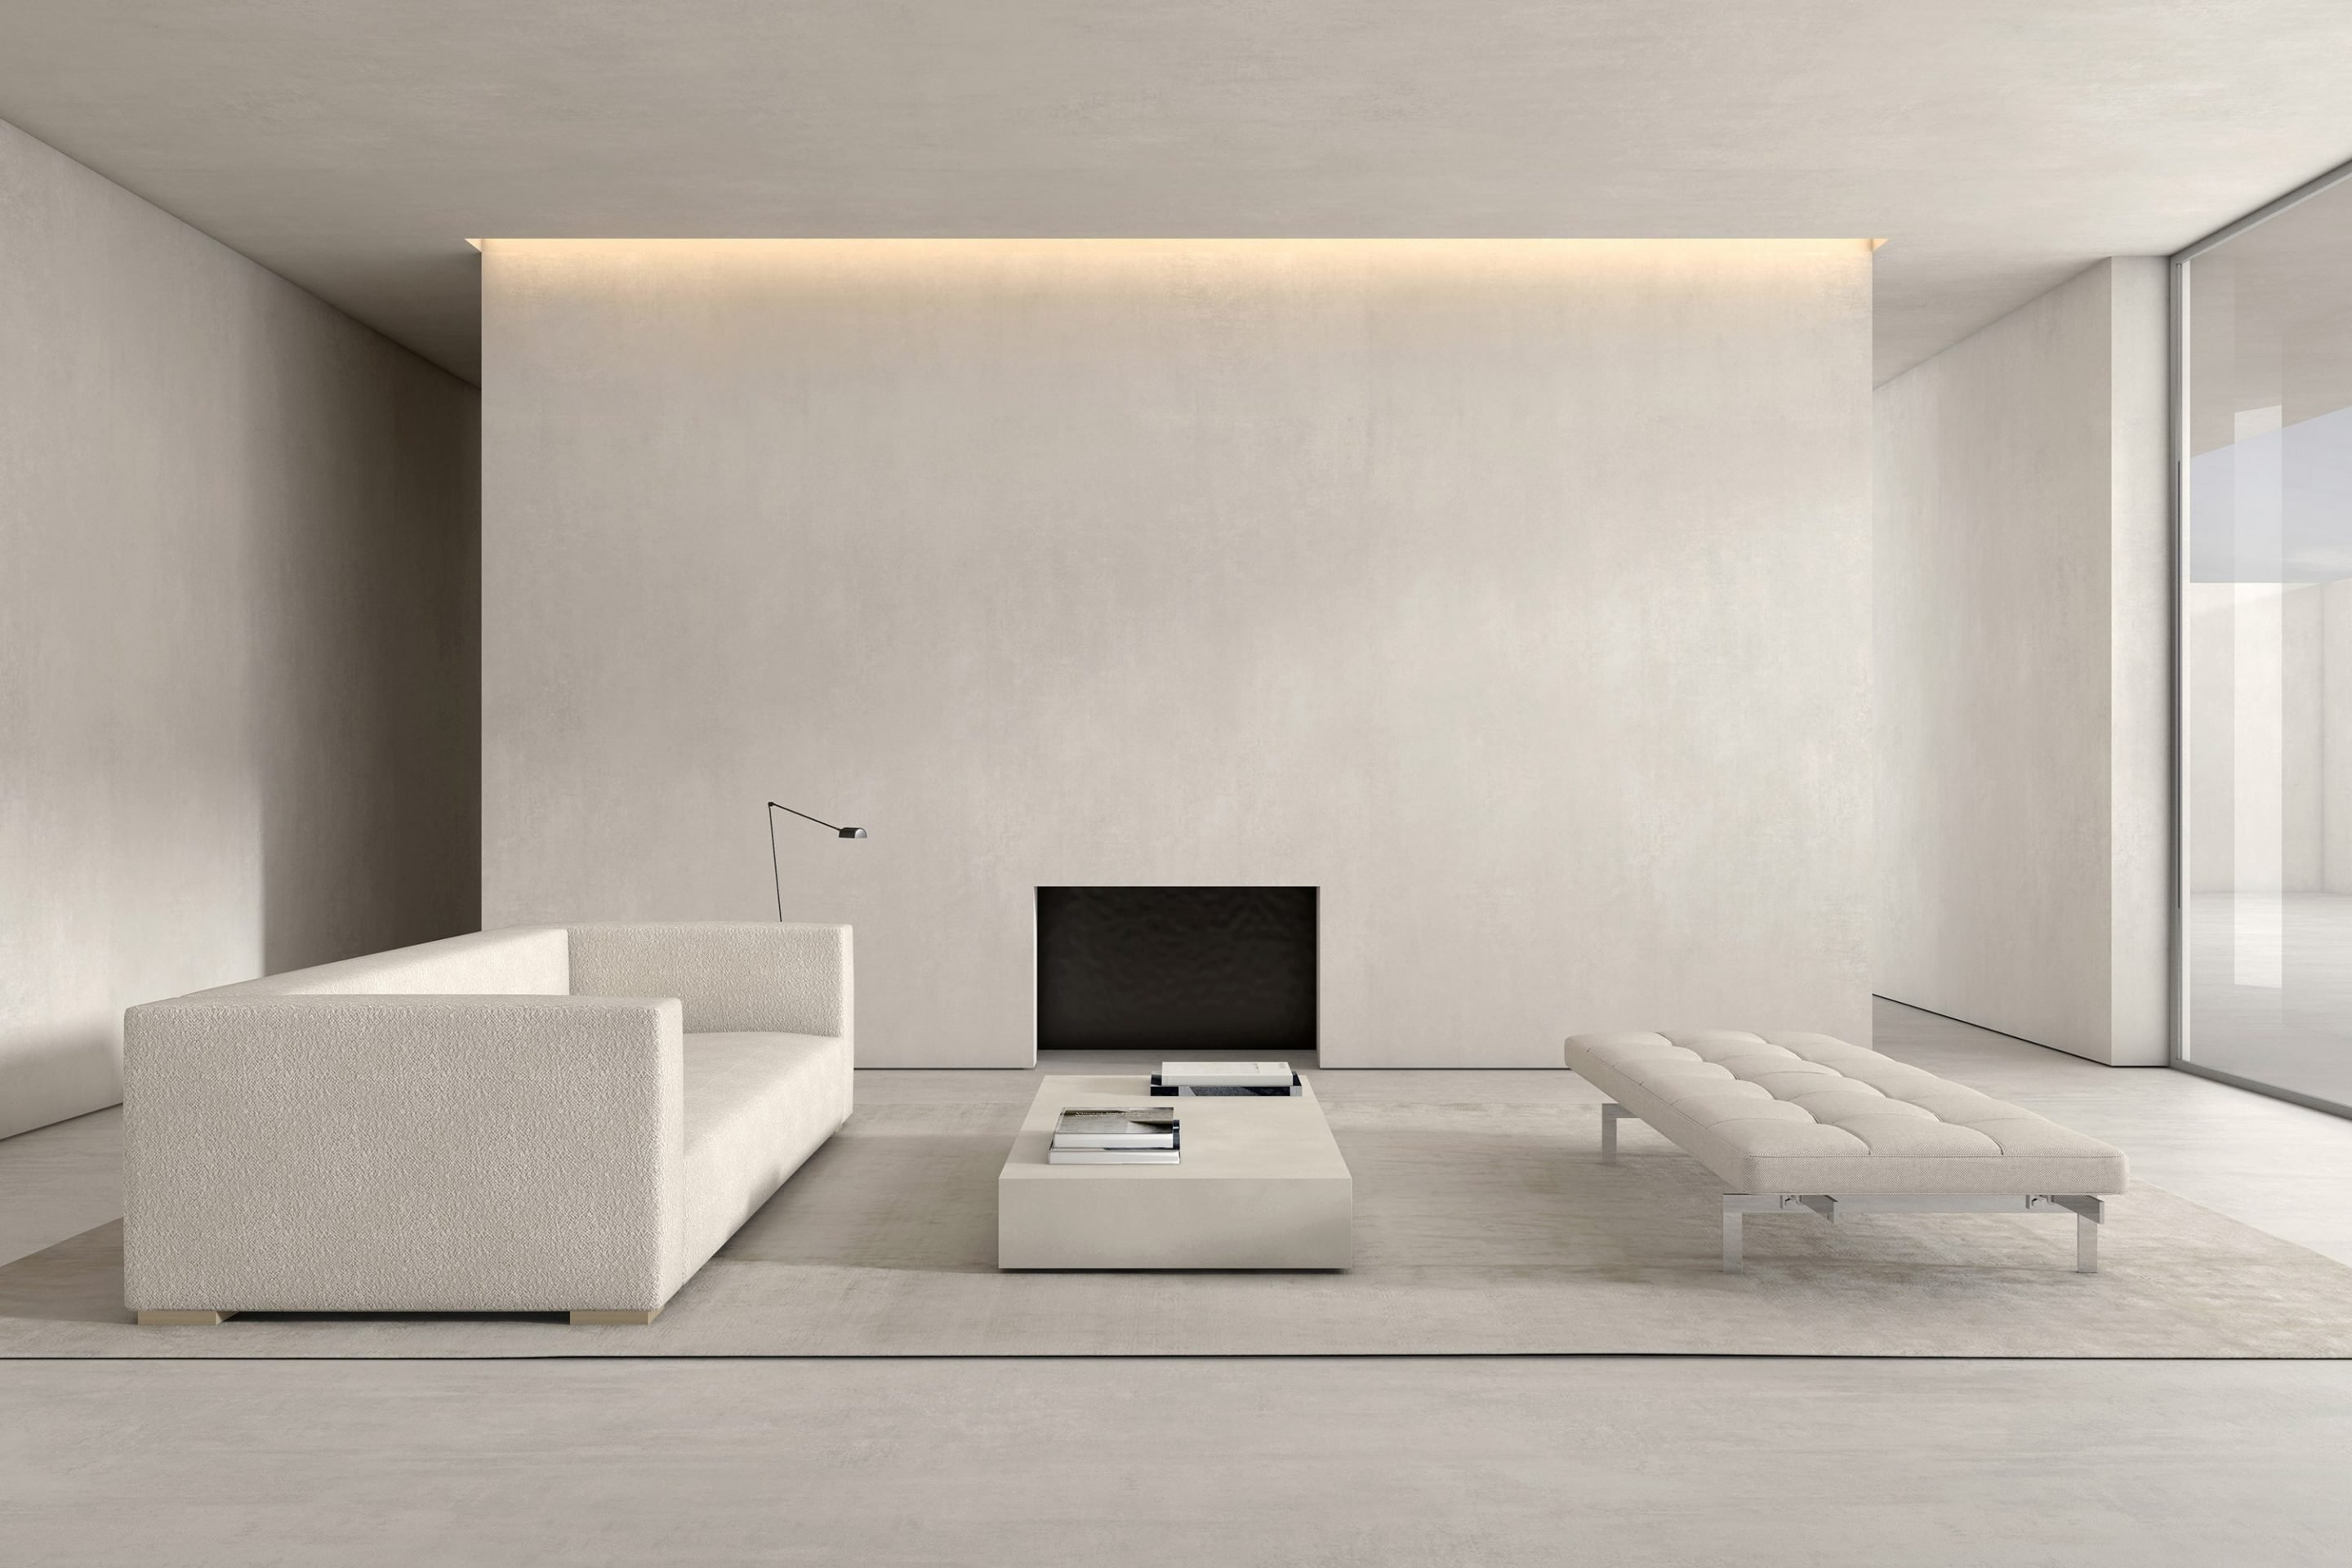 IGNANT-Design-Michelle-Wentworth-NS-Residence-01